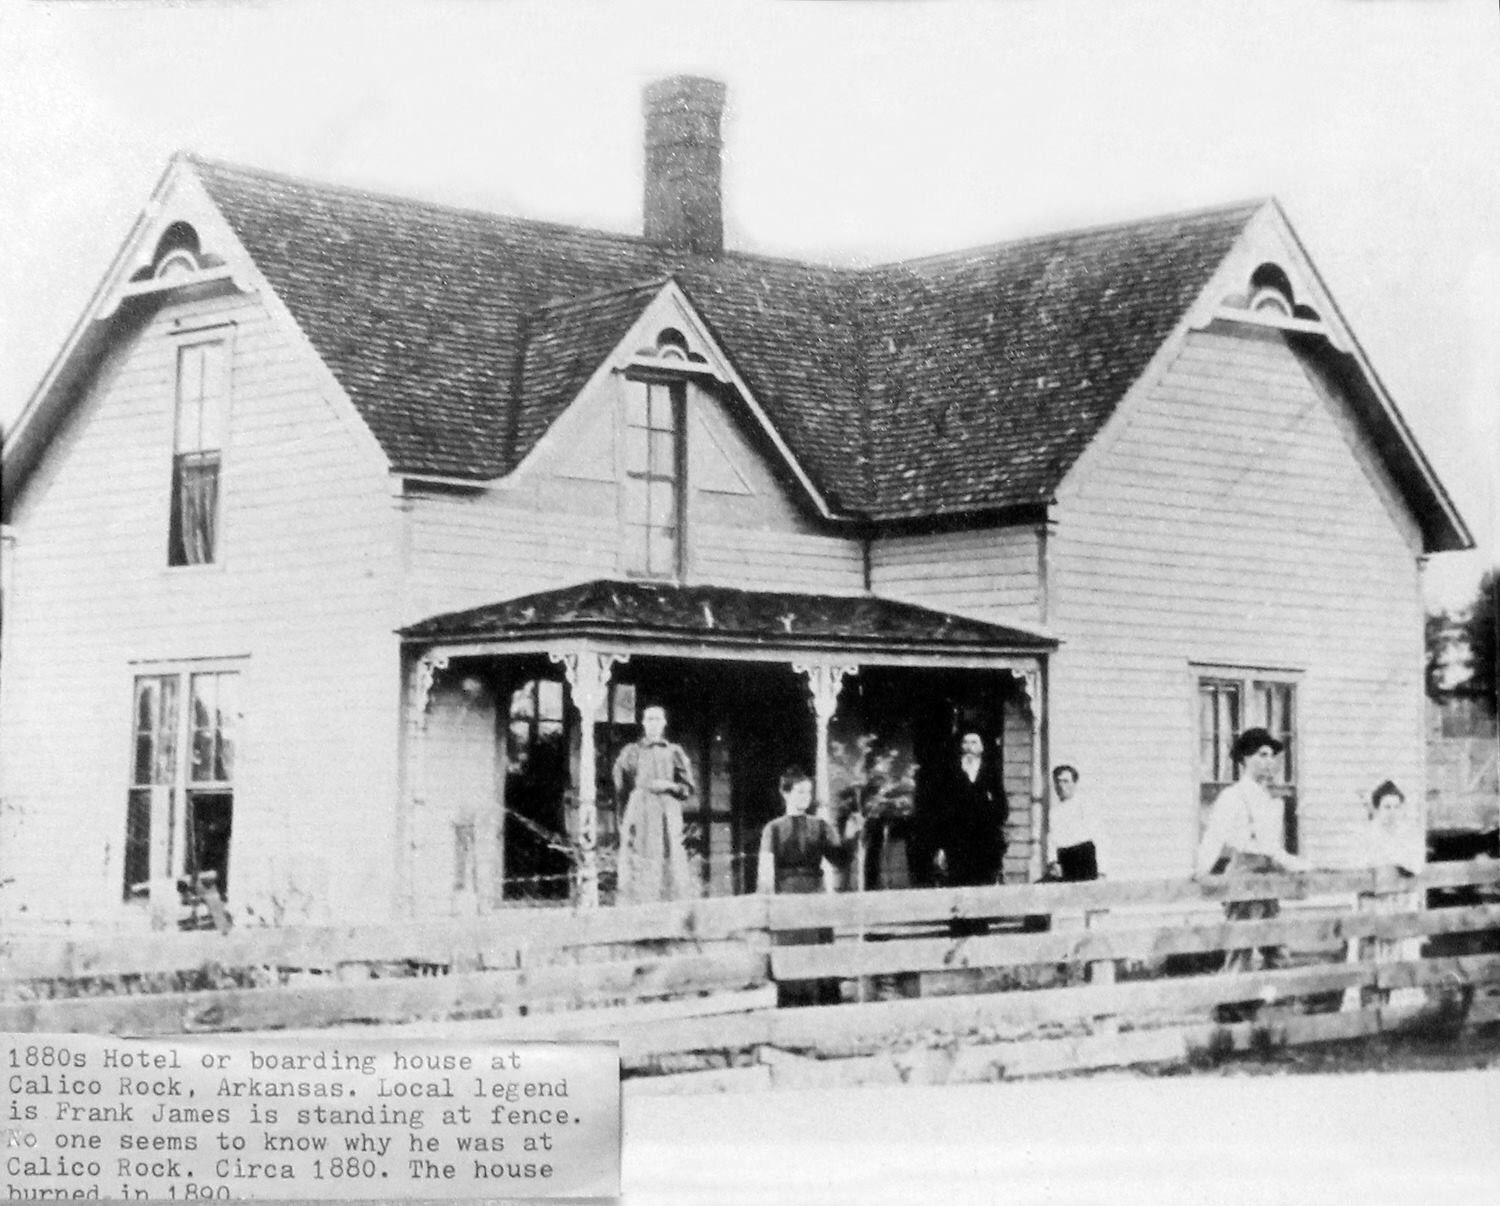 Calico Rock Hotel In Arkansas Around The 1880 S Rumor Is That Frank James Standing At Fence